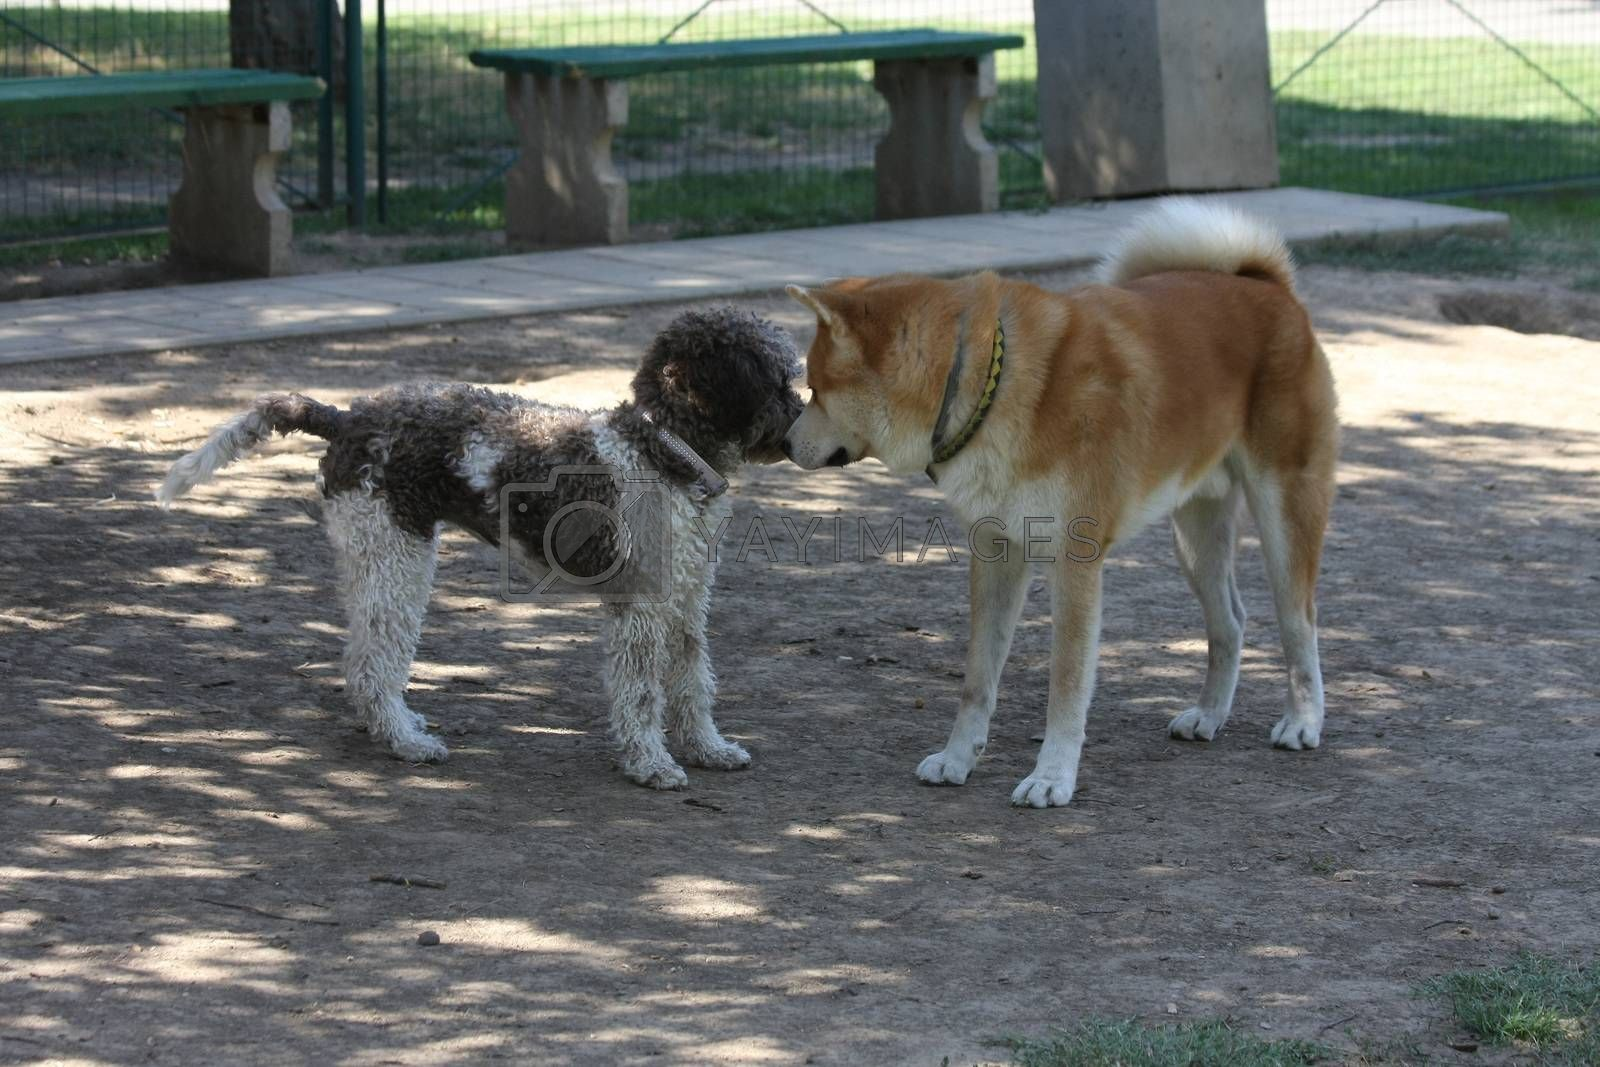 Dogs introducing each other in dog park